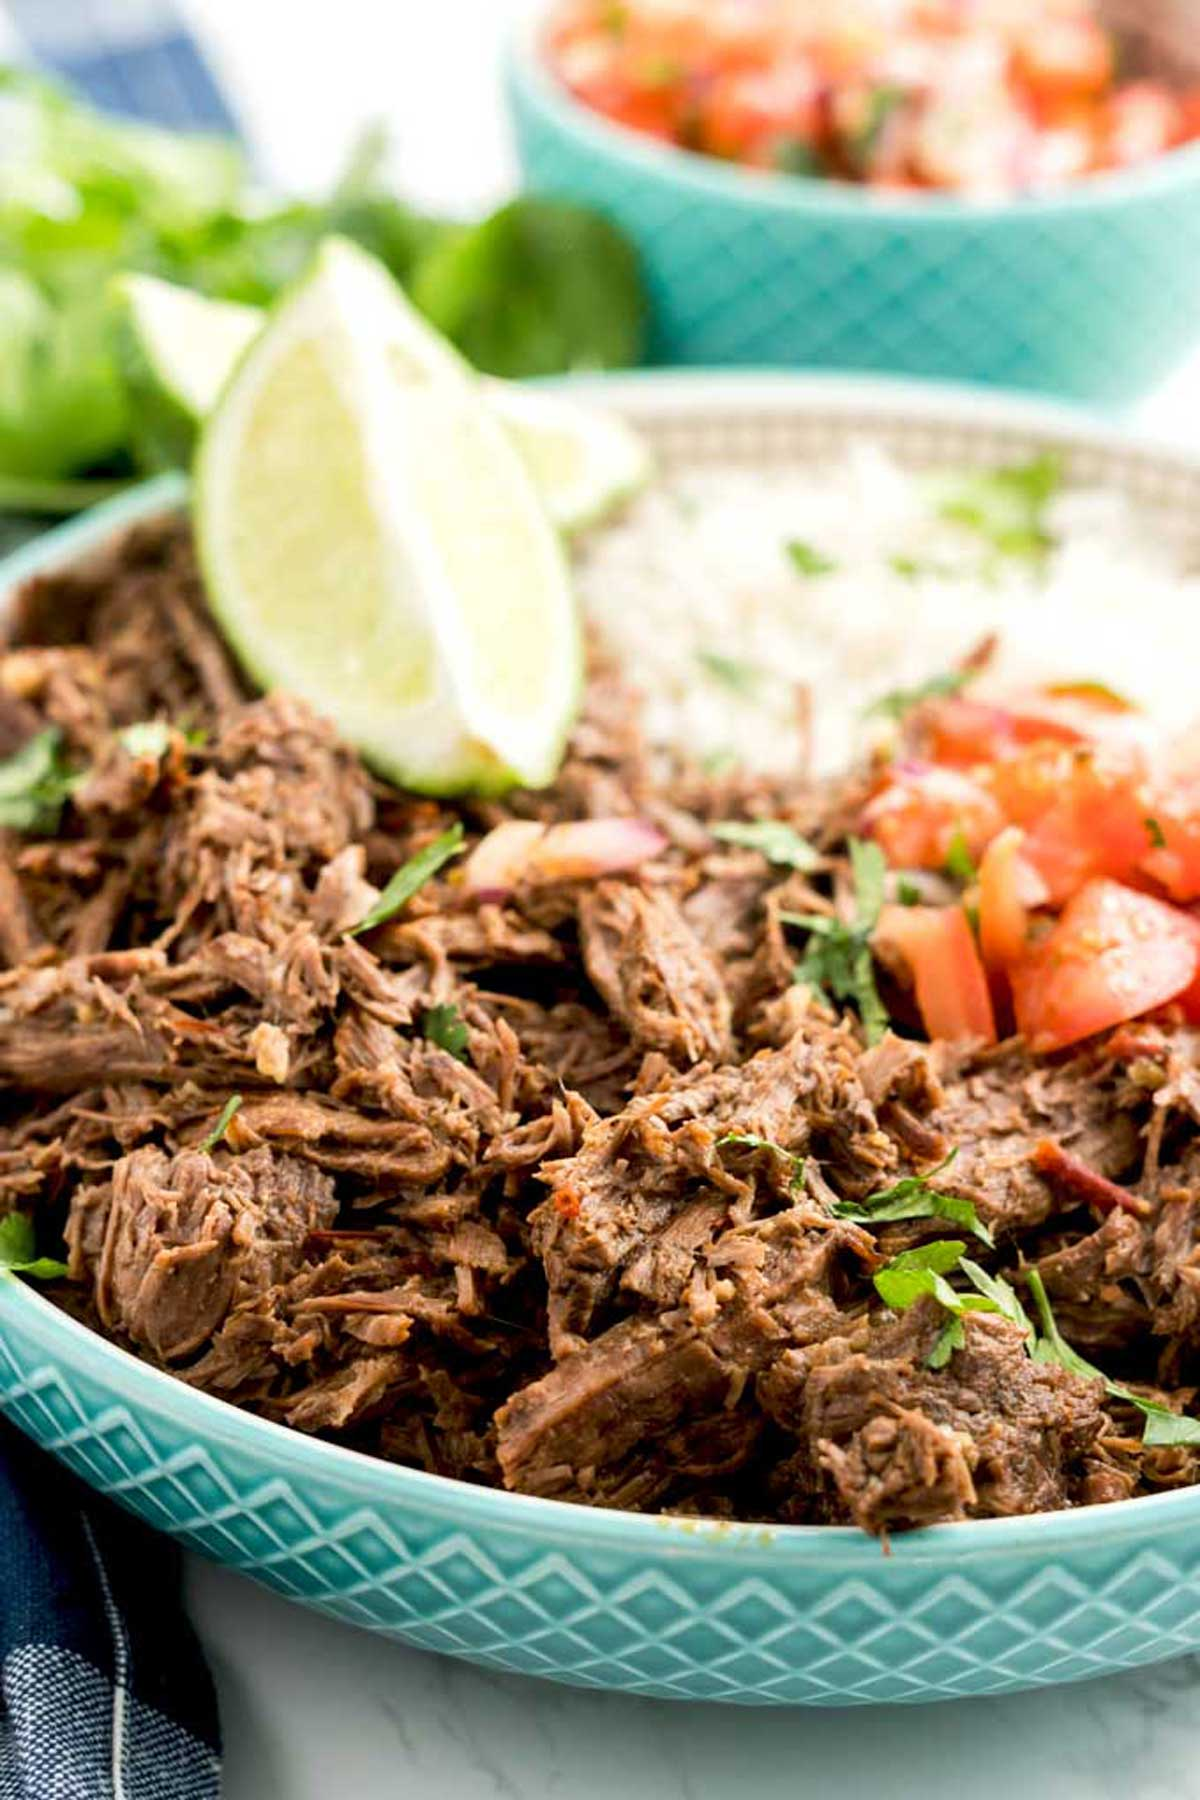 Mexican Shredded Beef or Chipotle Barbacoa in a bowl